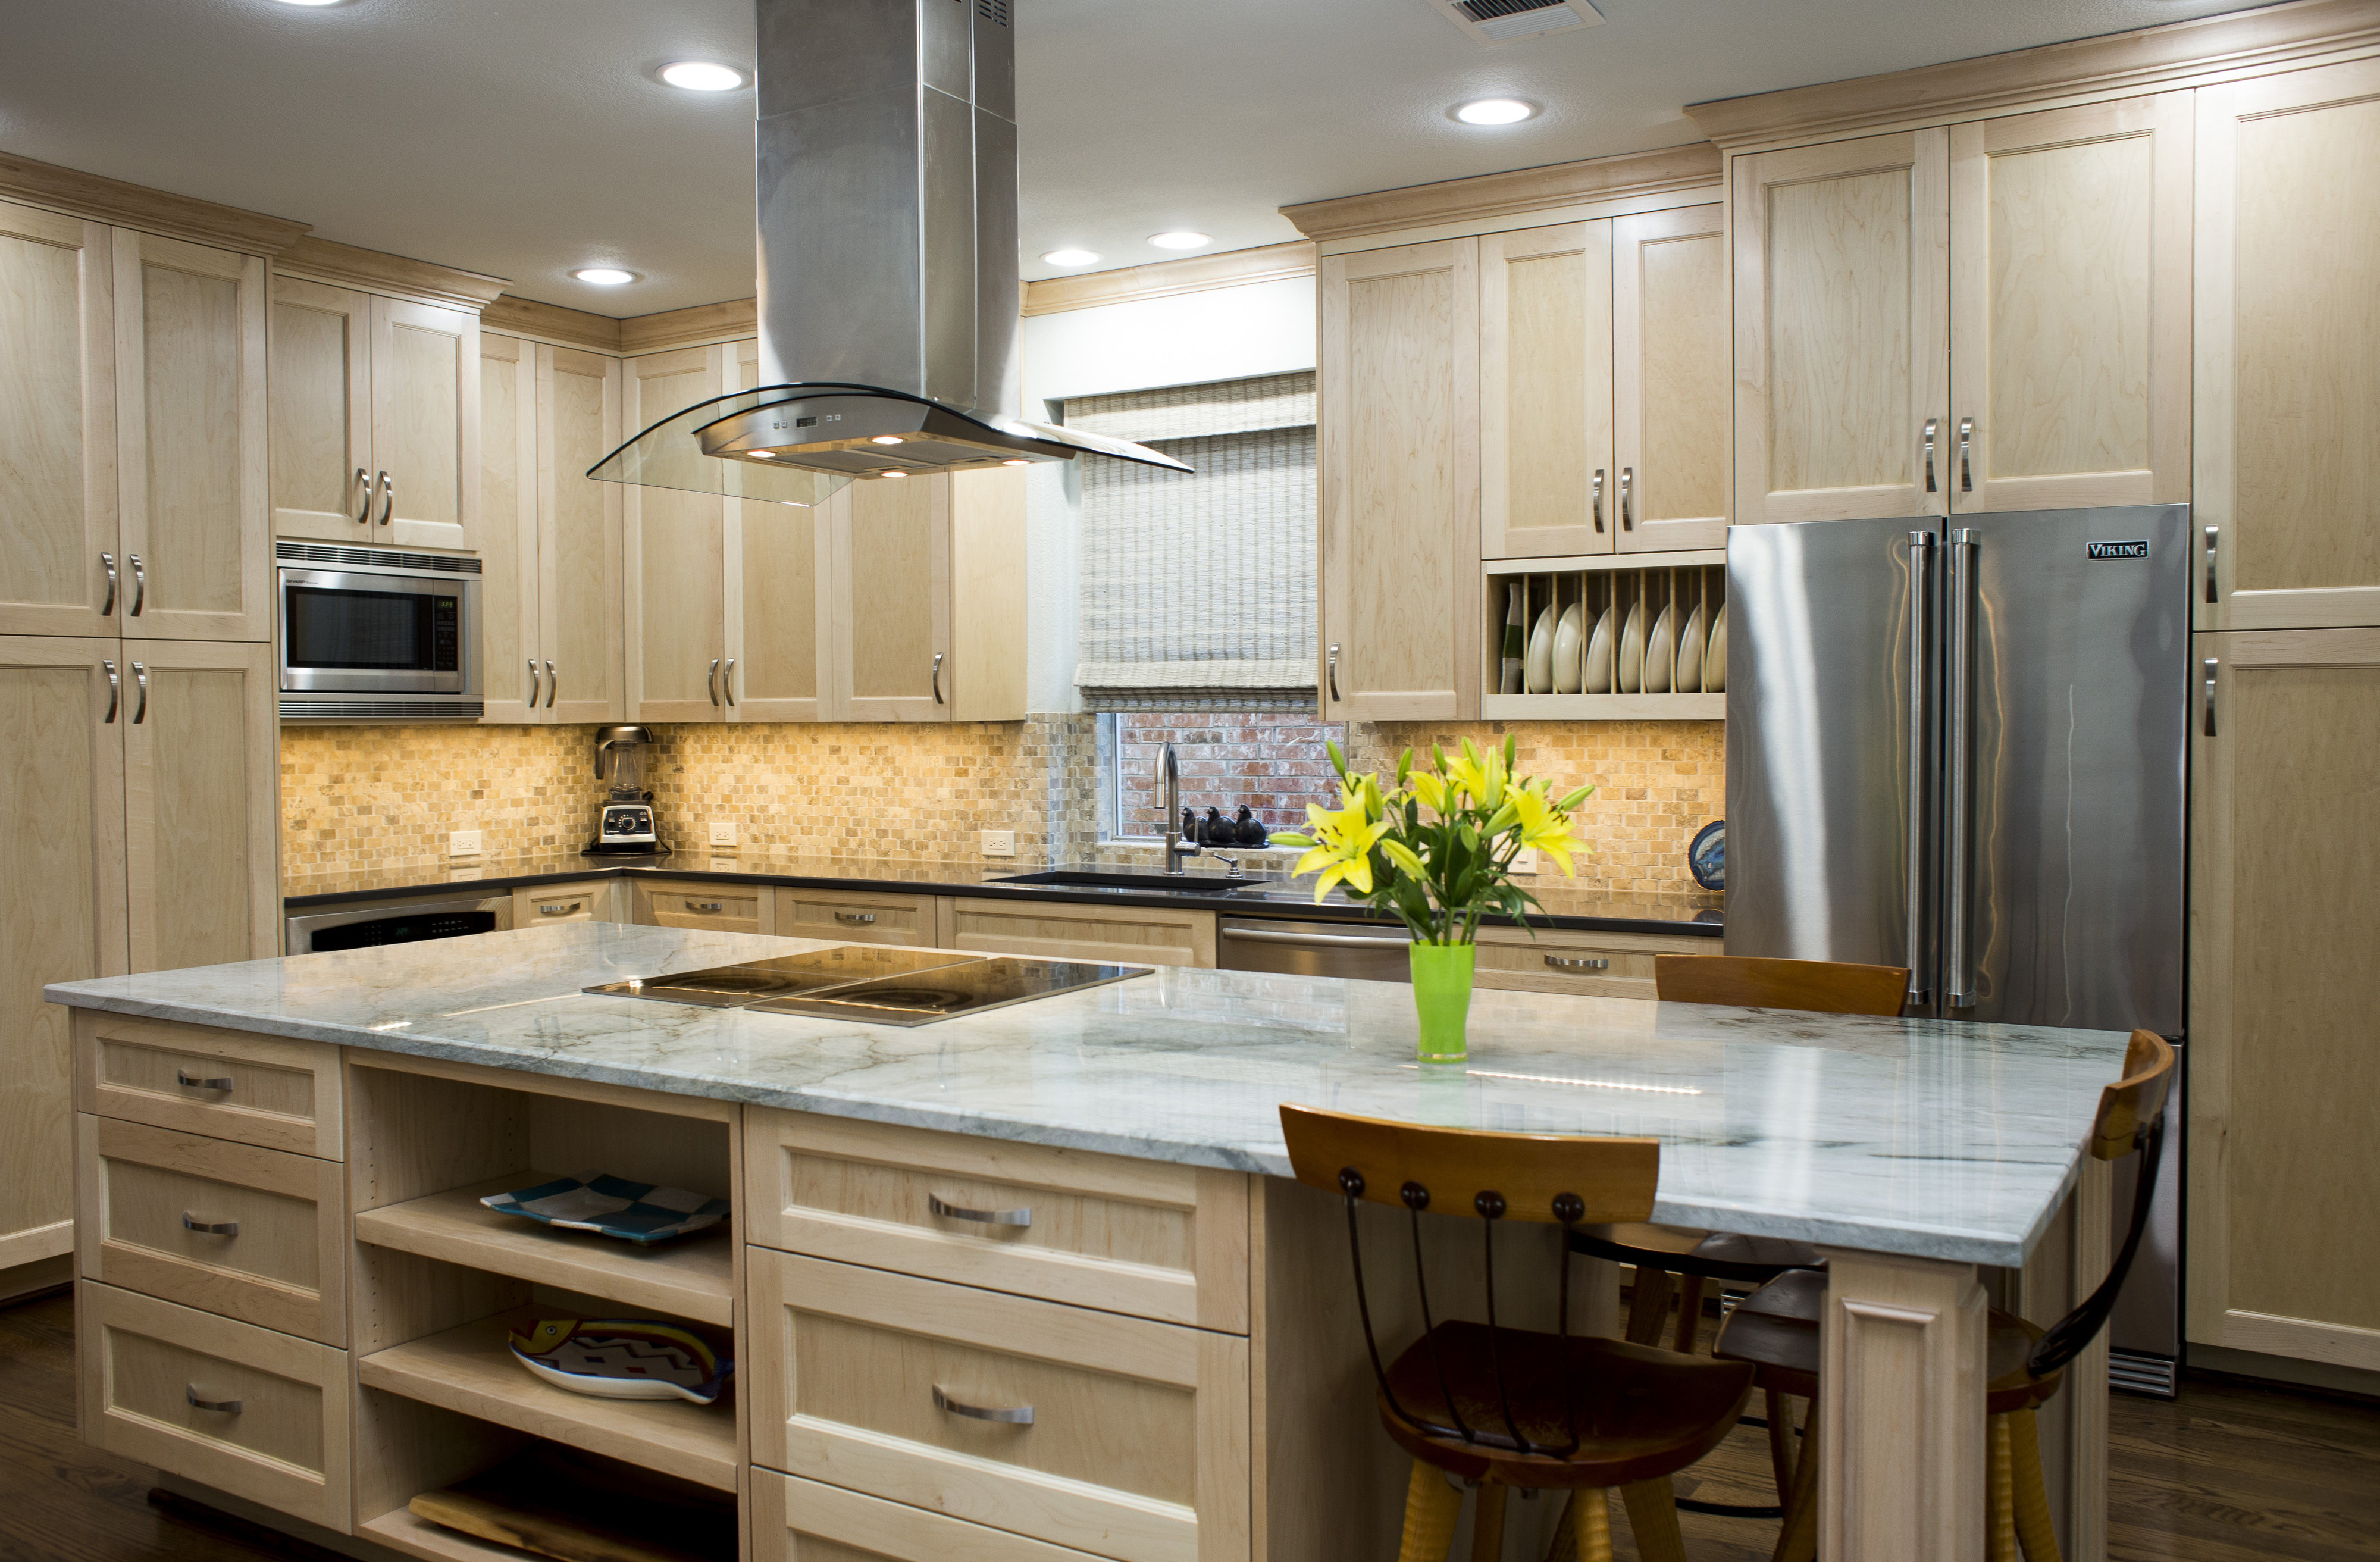 remodel works bath & kitchen metal trash can j williams construction and remodeling inc our work